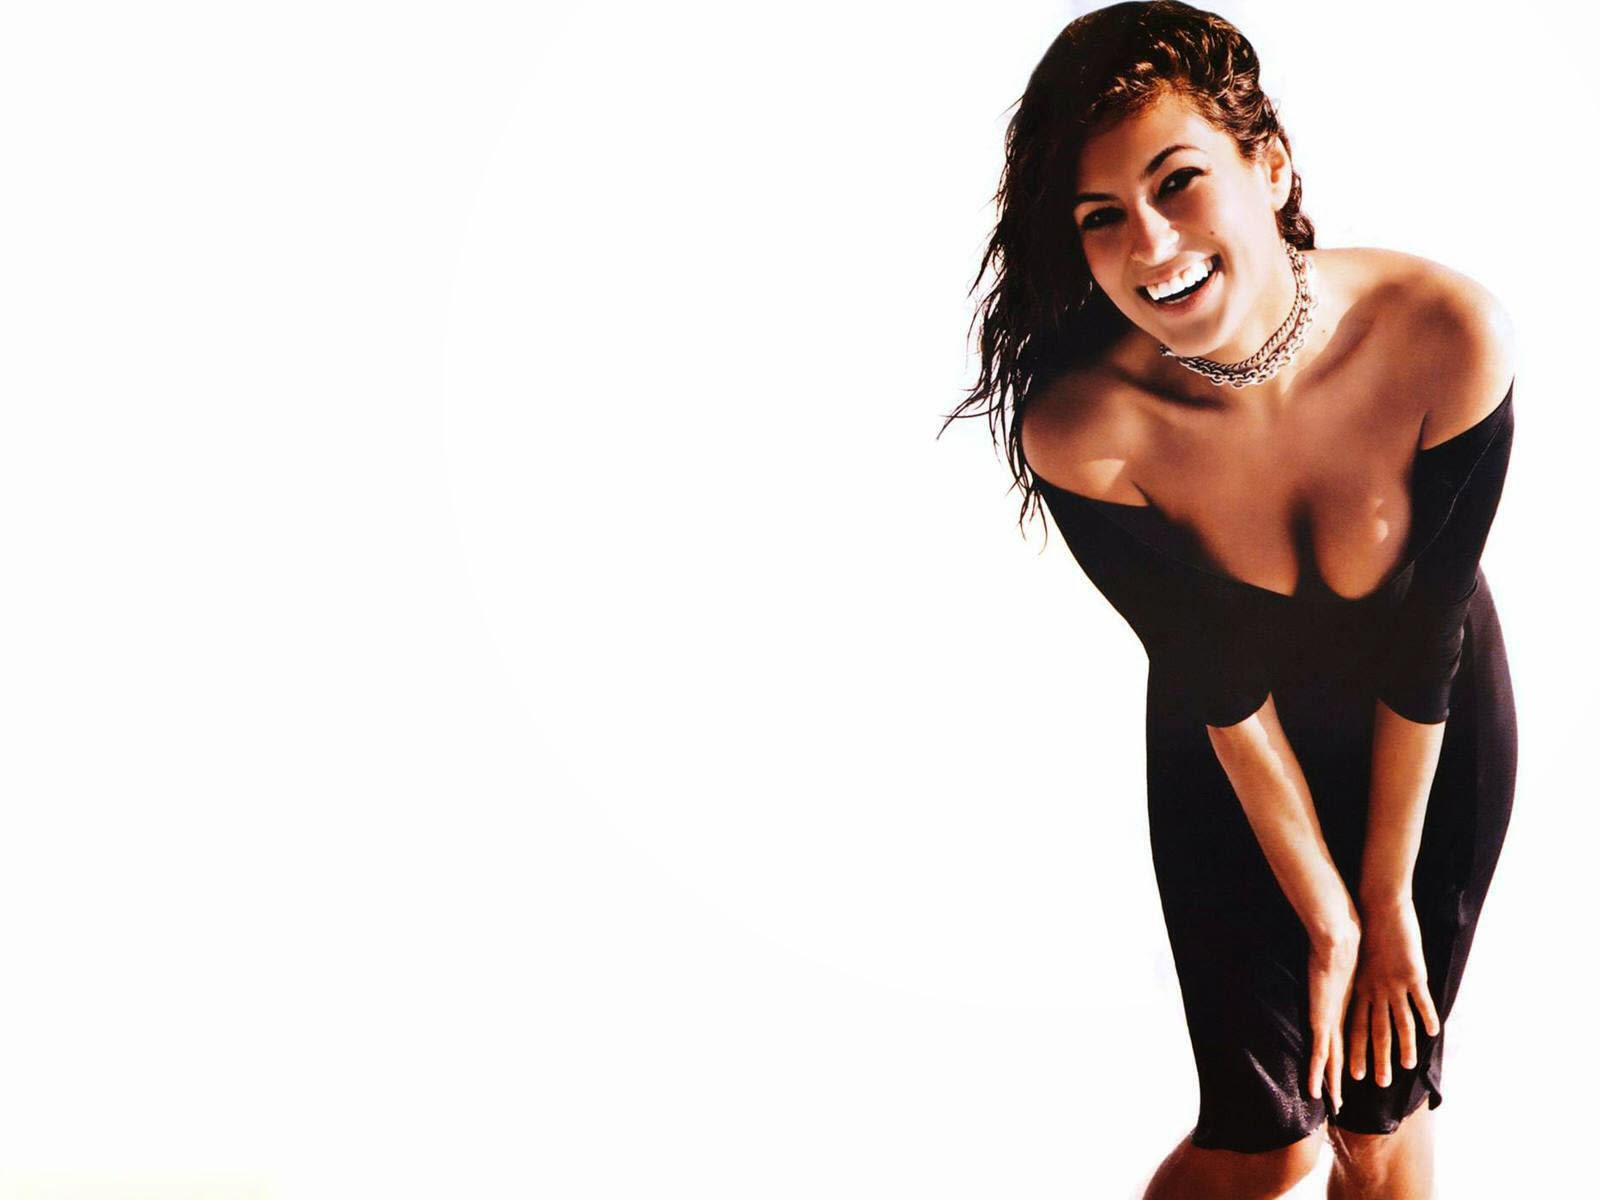 Eva mendes nice smile hd desktop wallpaper